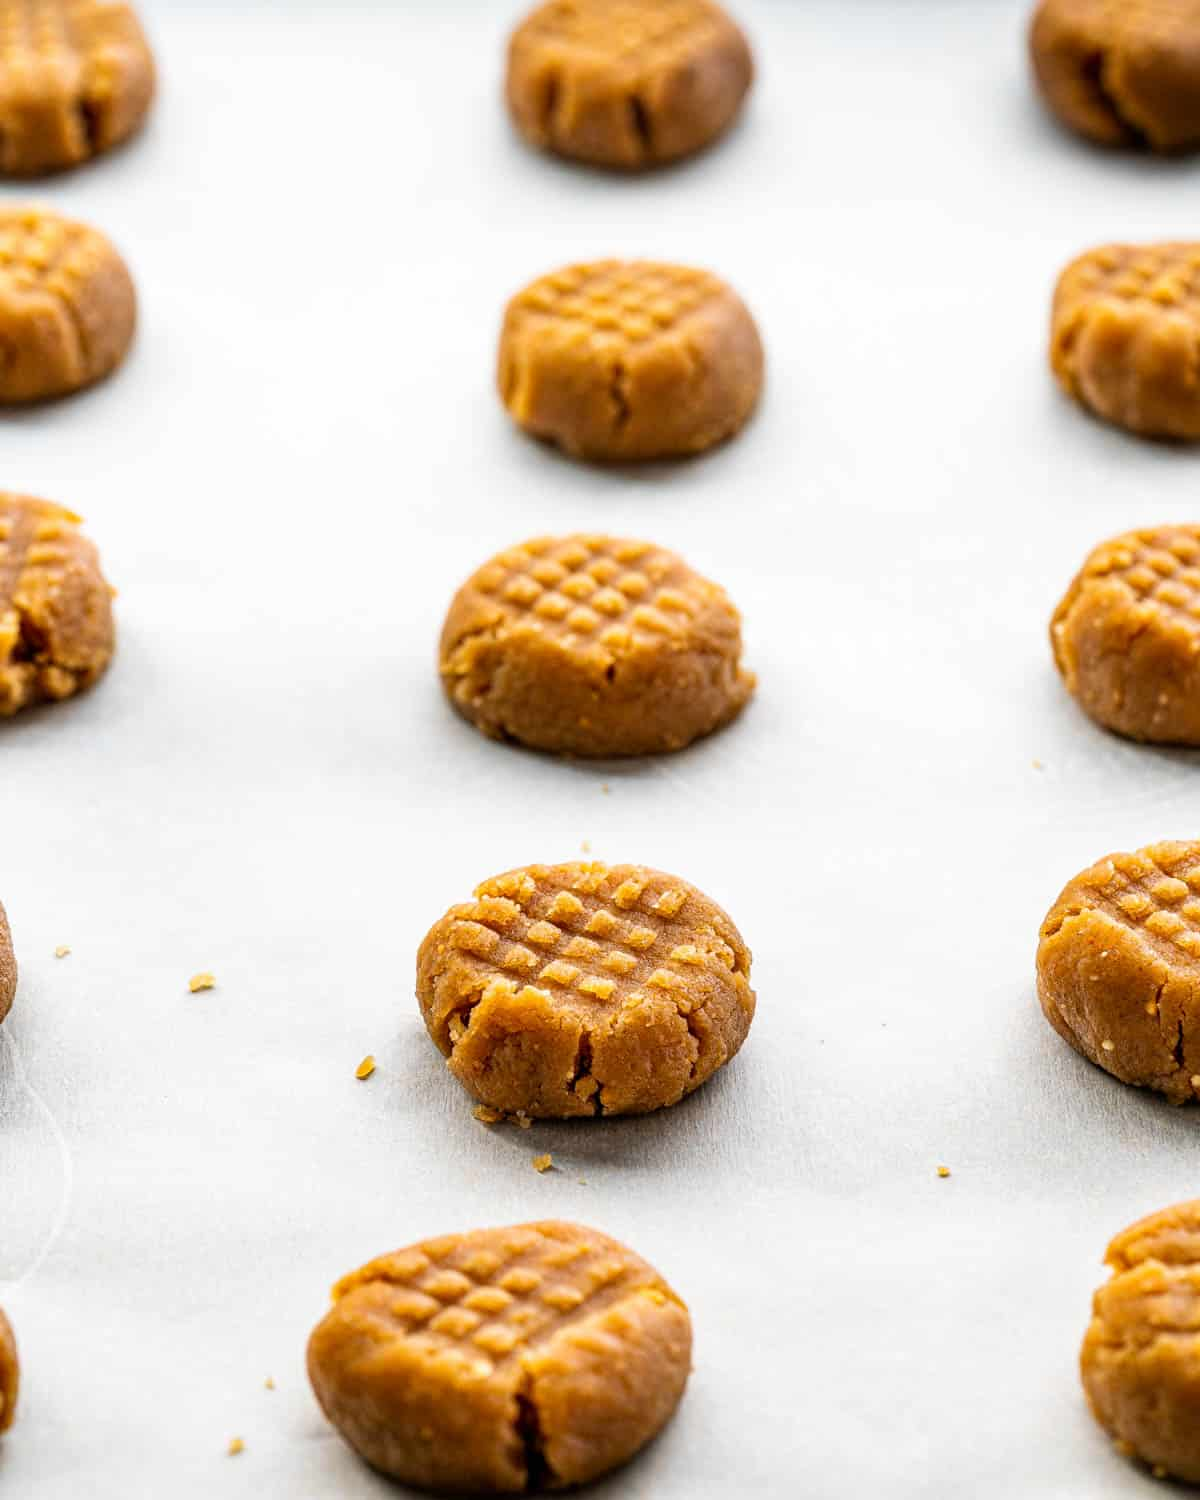 peanut butter cookies on a baking sheet ready to go in the oven.